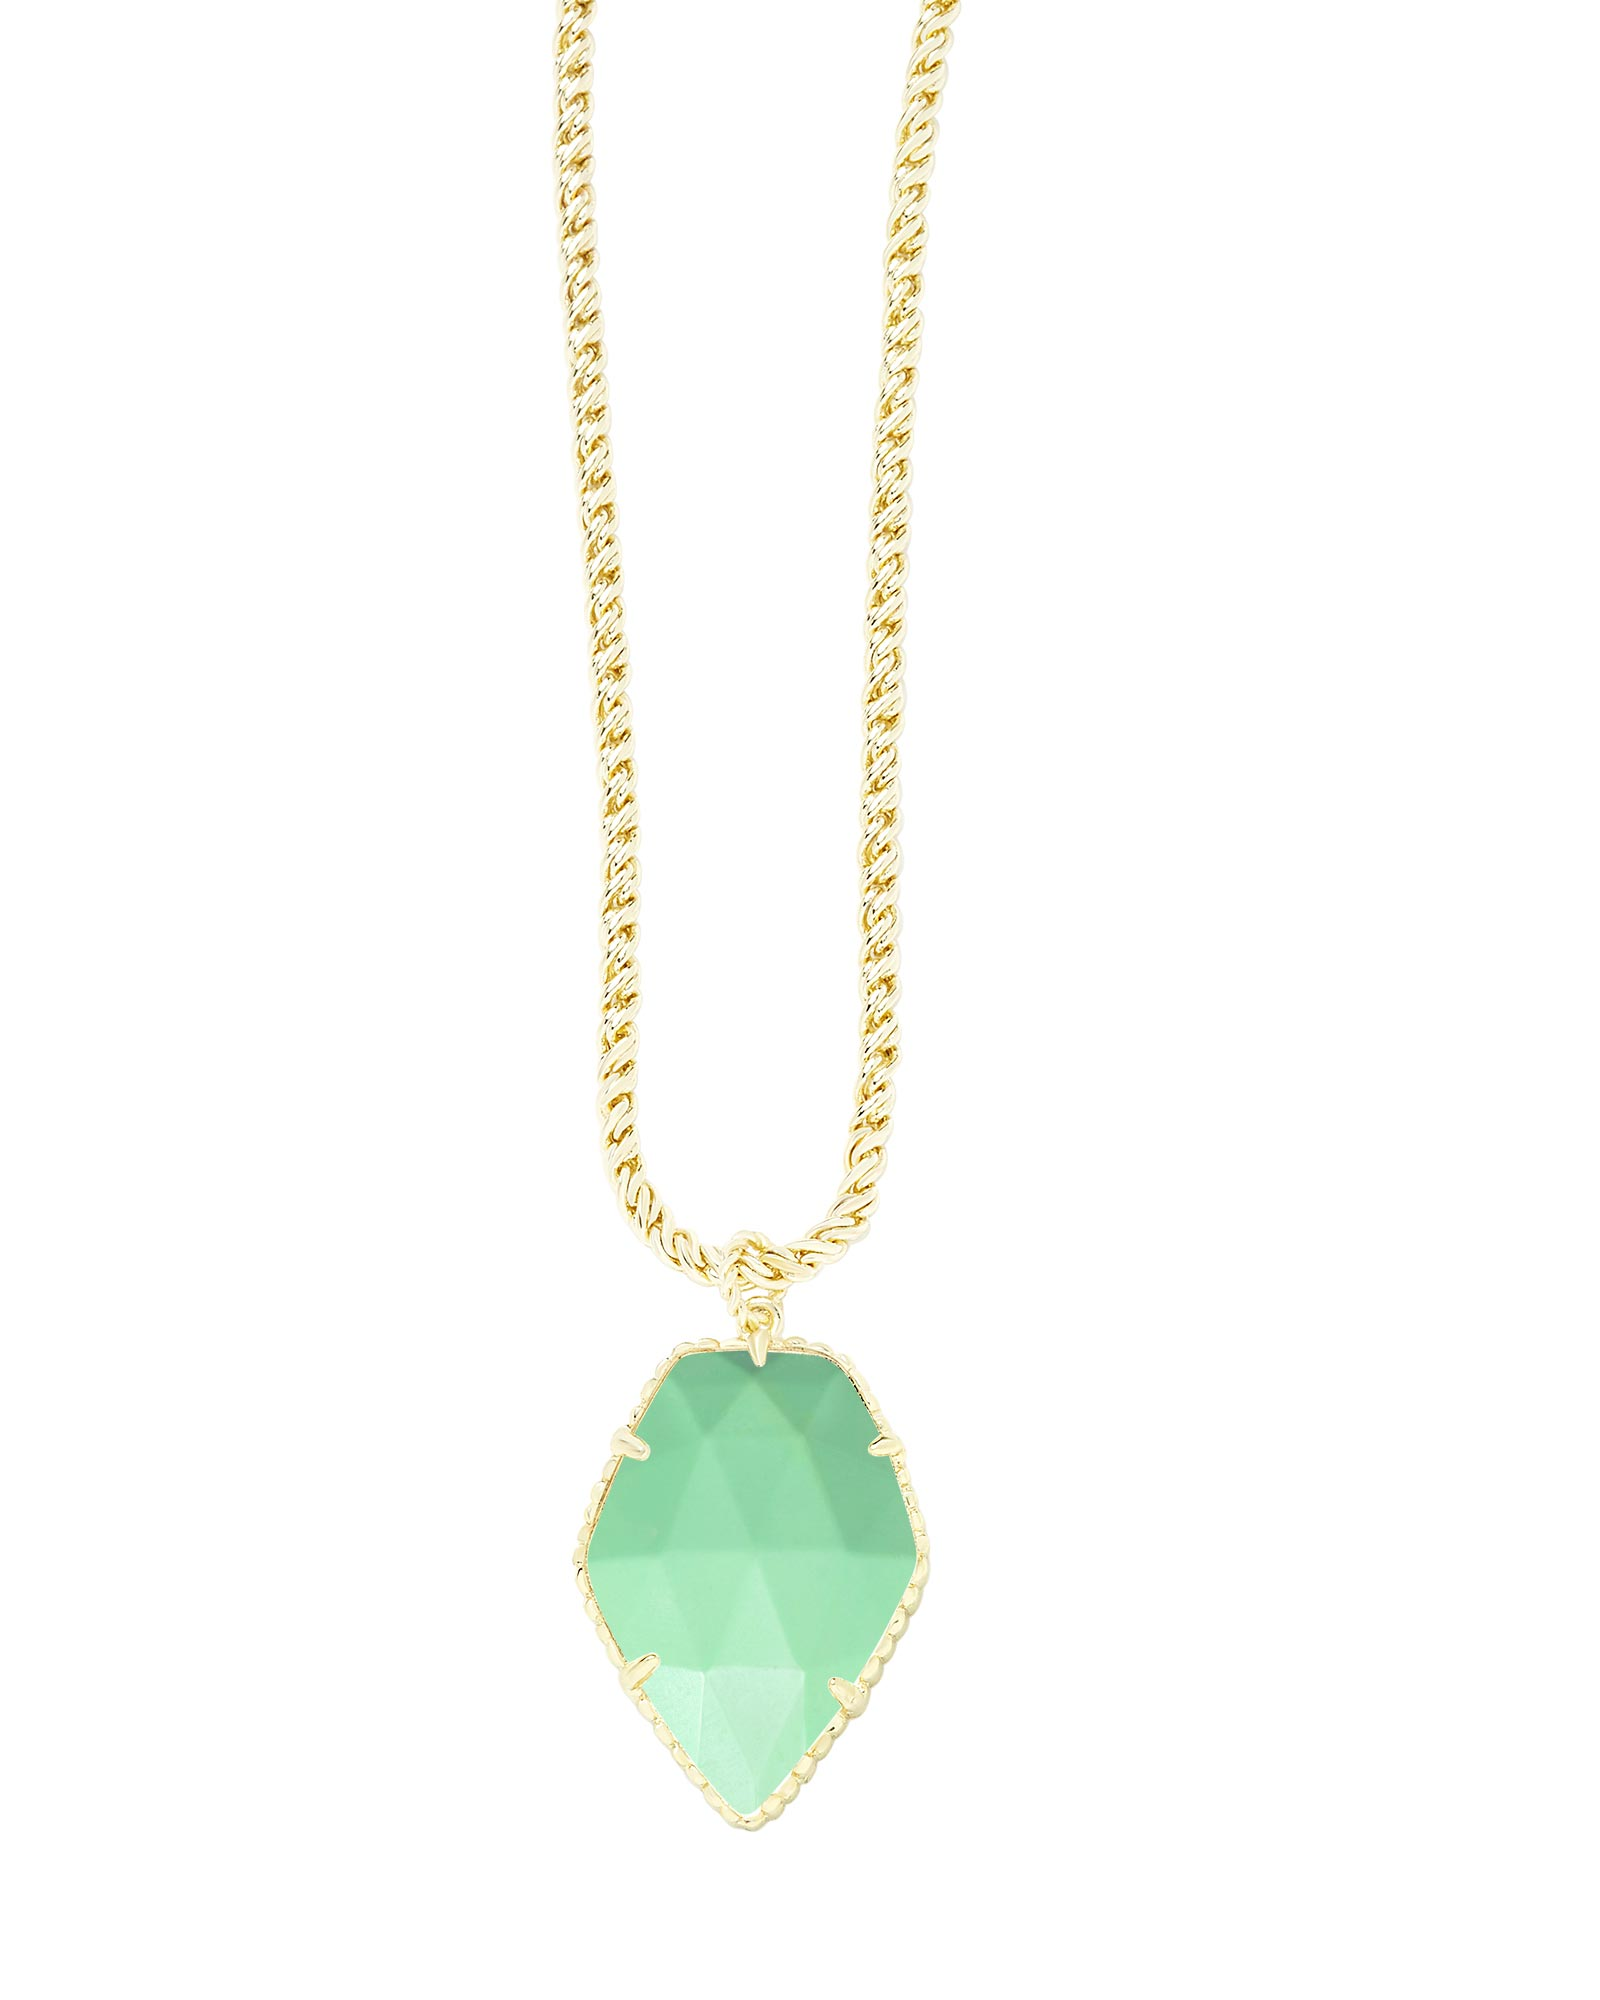 Corla Gold Necklace in Mint